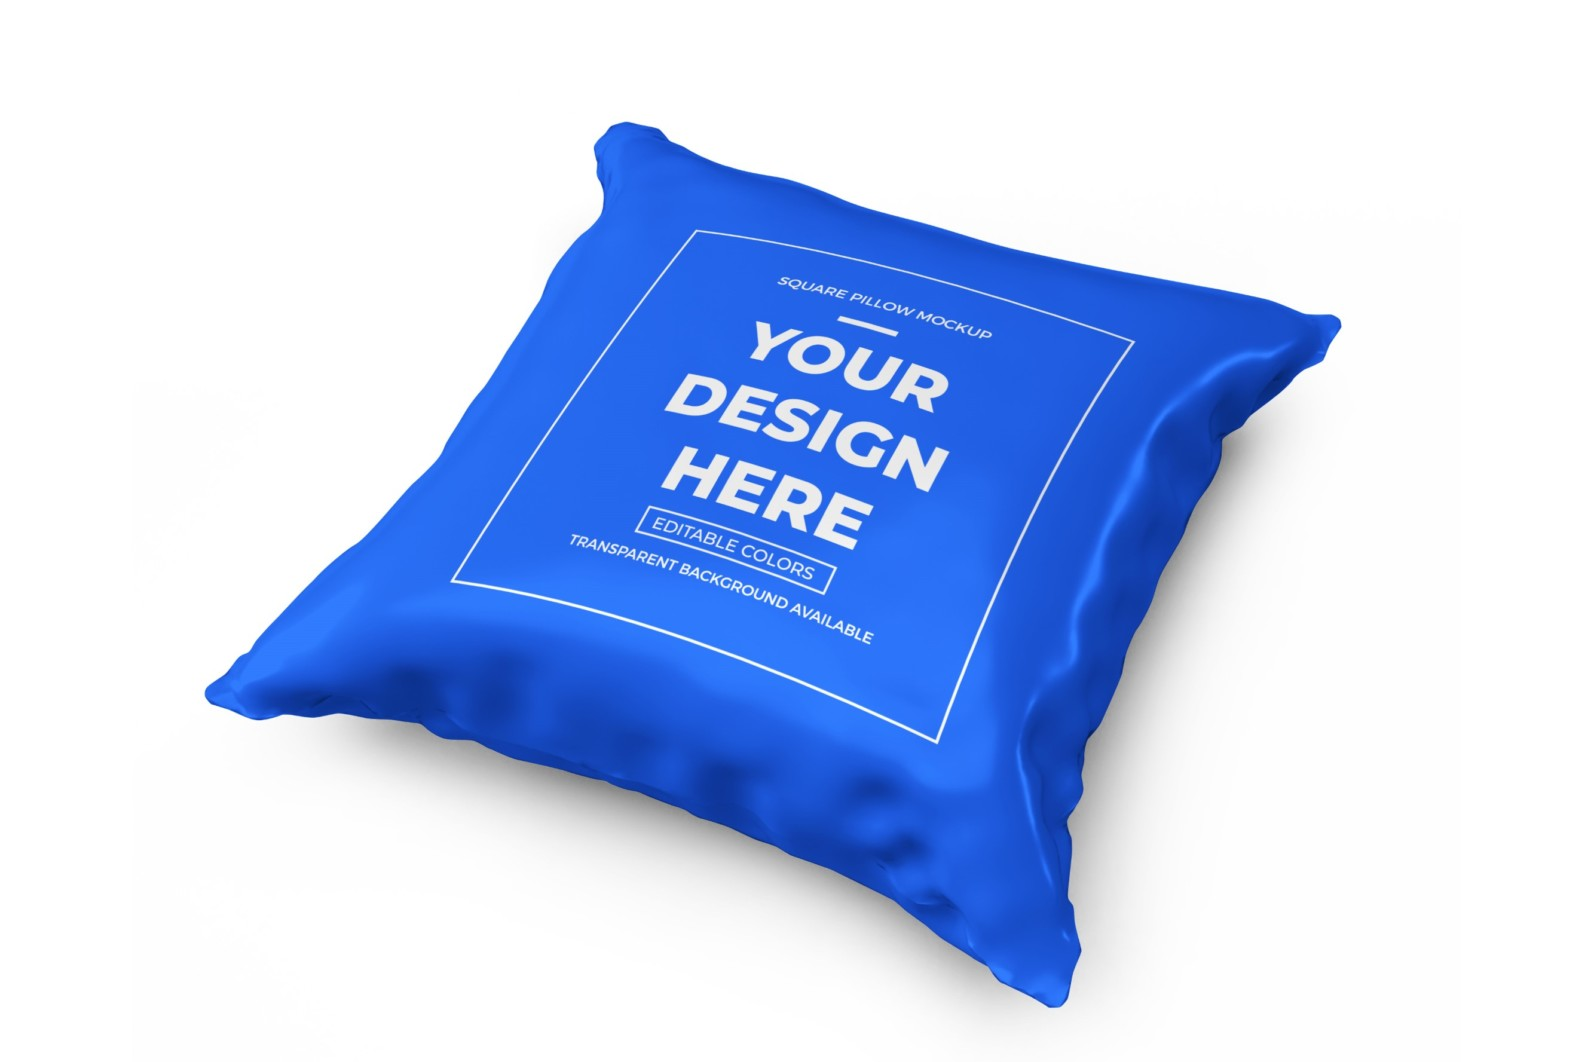 Square Pillow Mockup Template Bundle - 02 49 scaled -